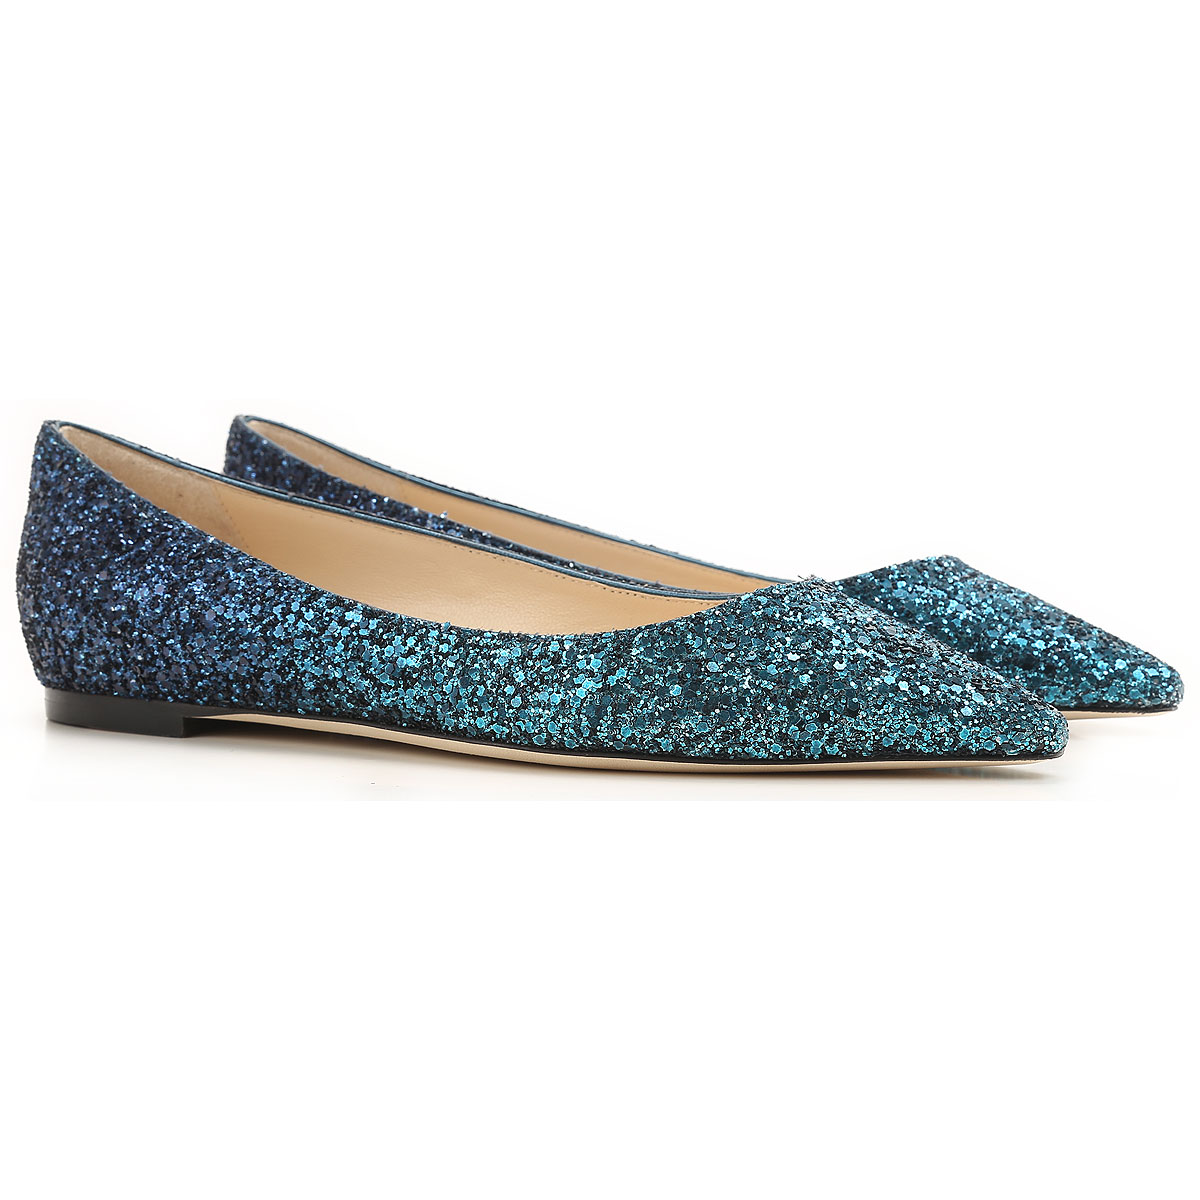 Image of Jimmy Choo Ballet Flats Ballerina Shoes for Women On Sale, navy, Glittered Leather, 2017, 10 6.5 7